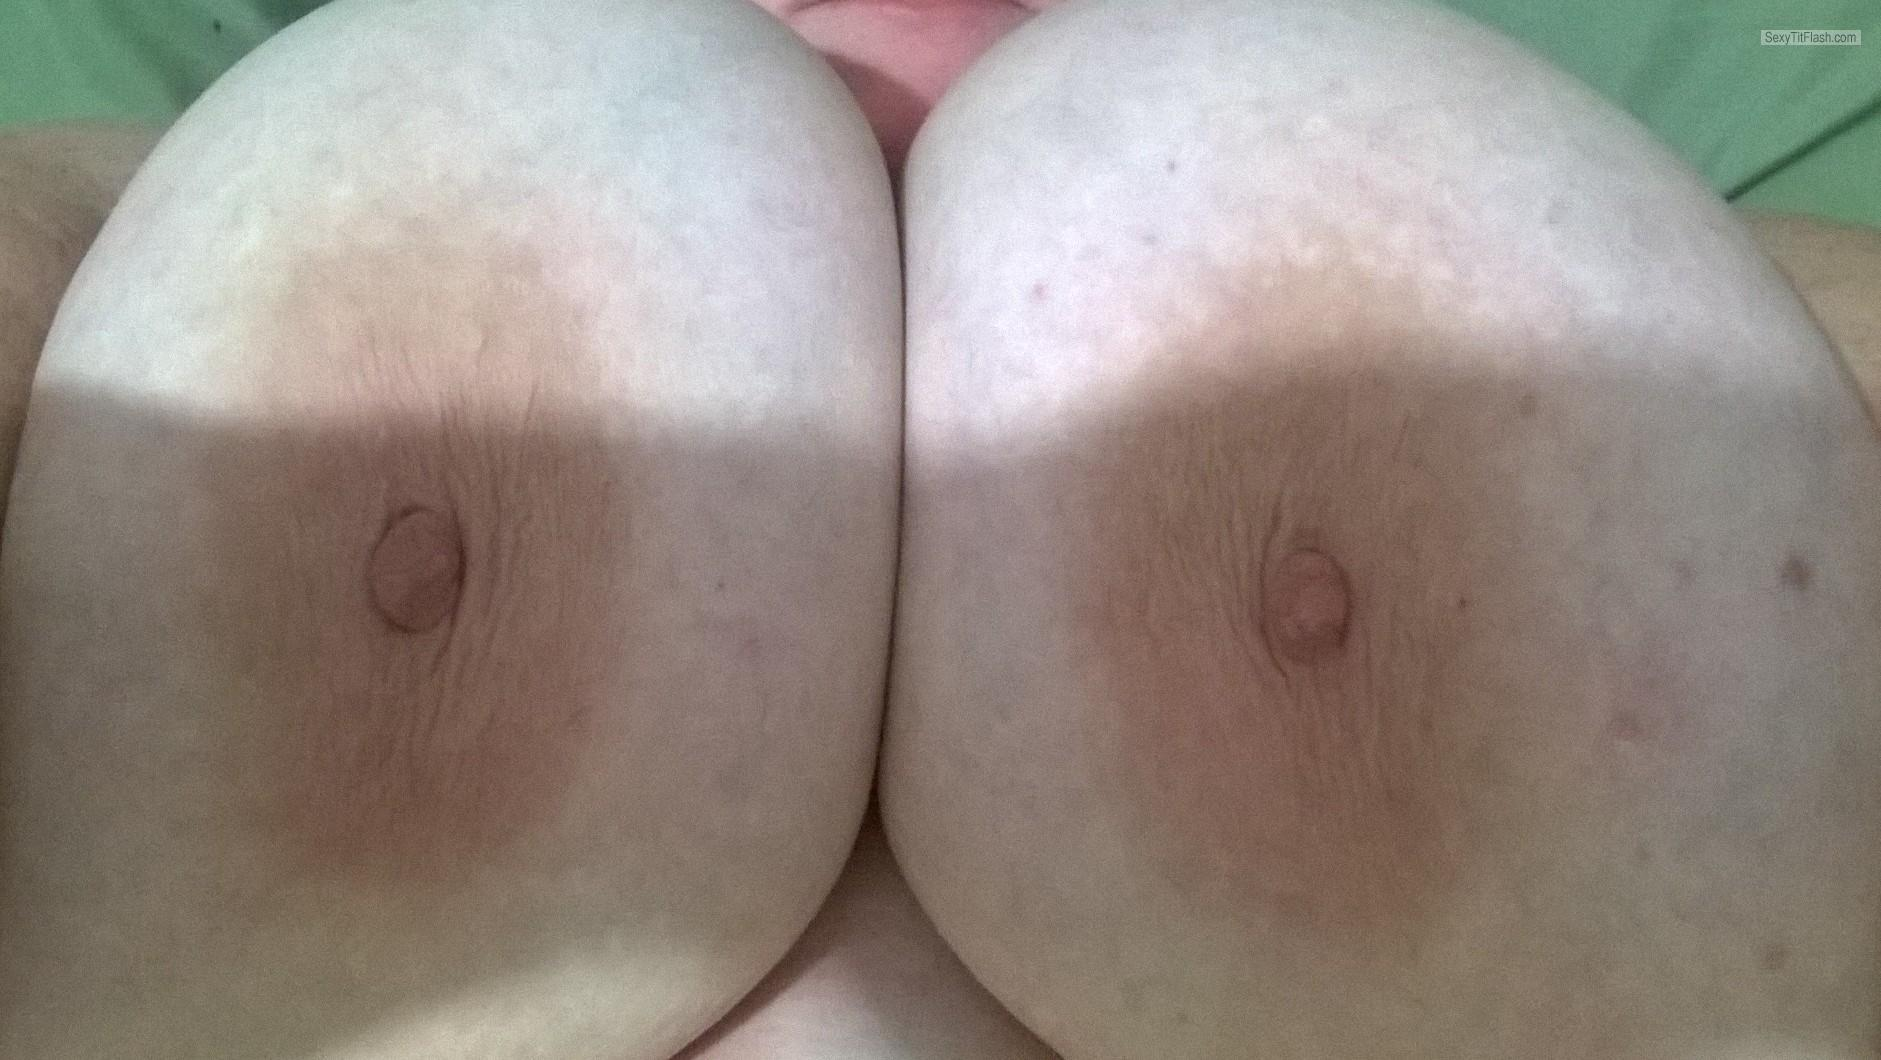 Giantass 42 ddd titty play bouncing rubbing and nipple squeezing bbw milf 3